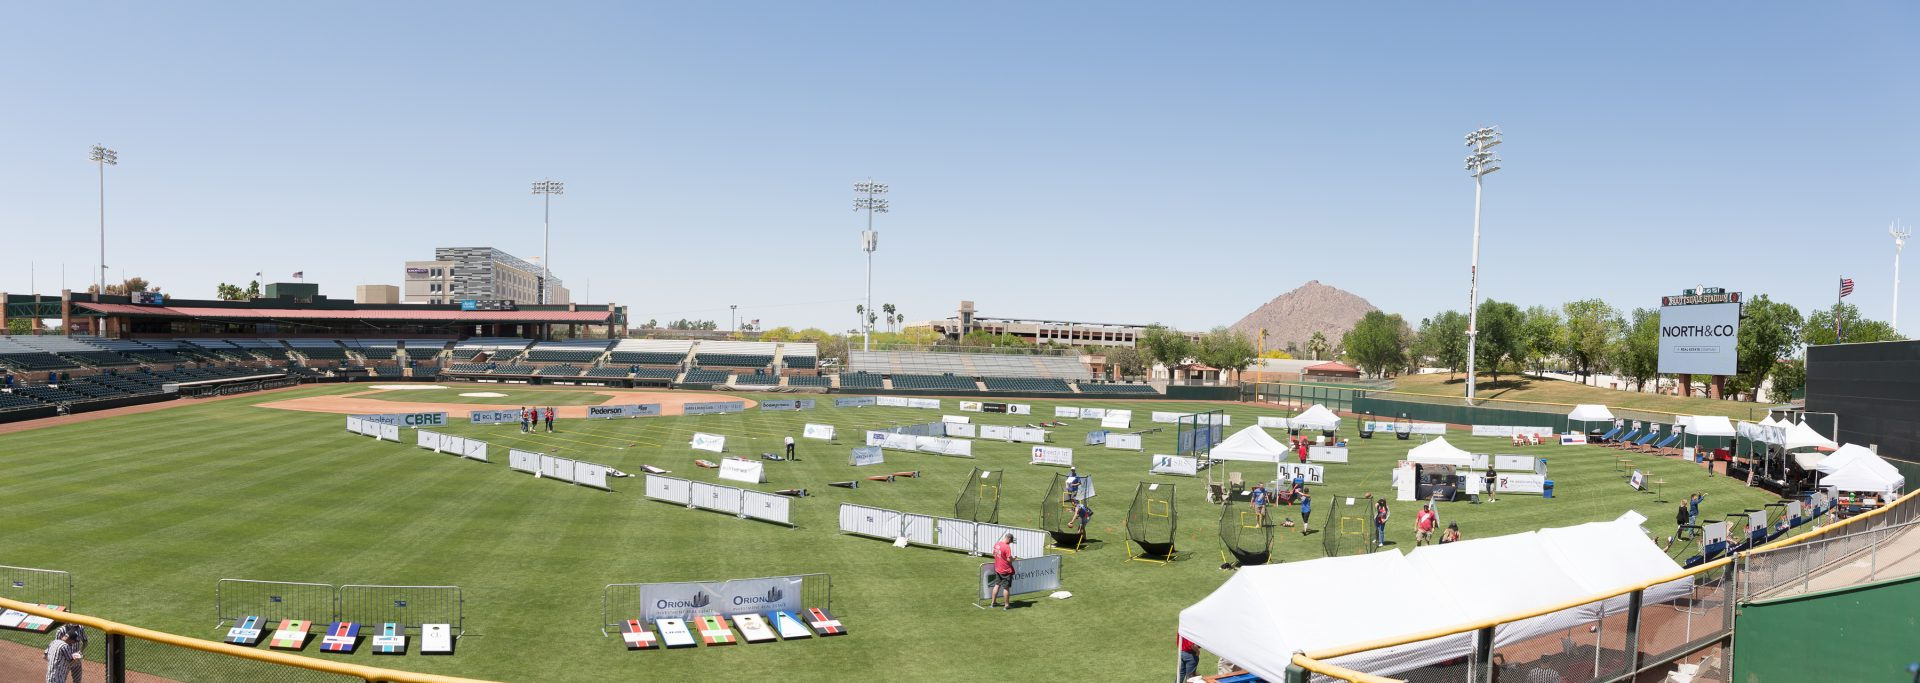 Scottsdale 2030 Olympiad, Friday, April 3rd., Scottsdale Stadium